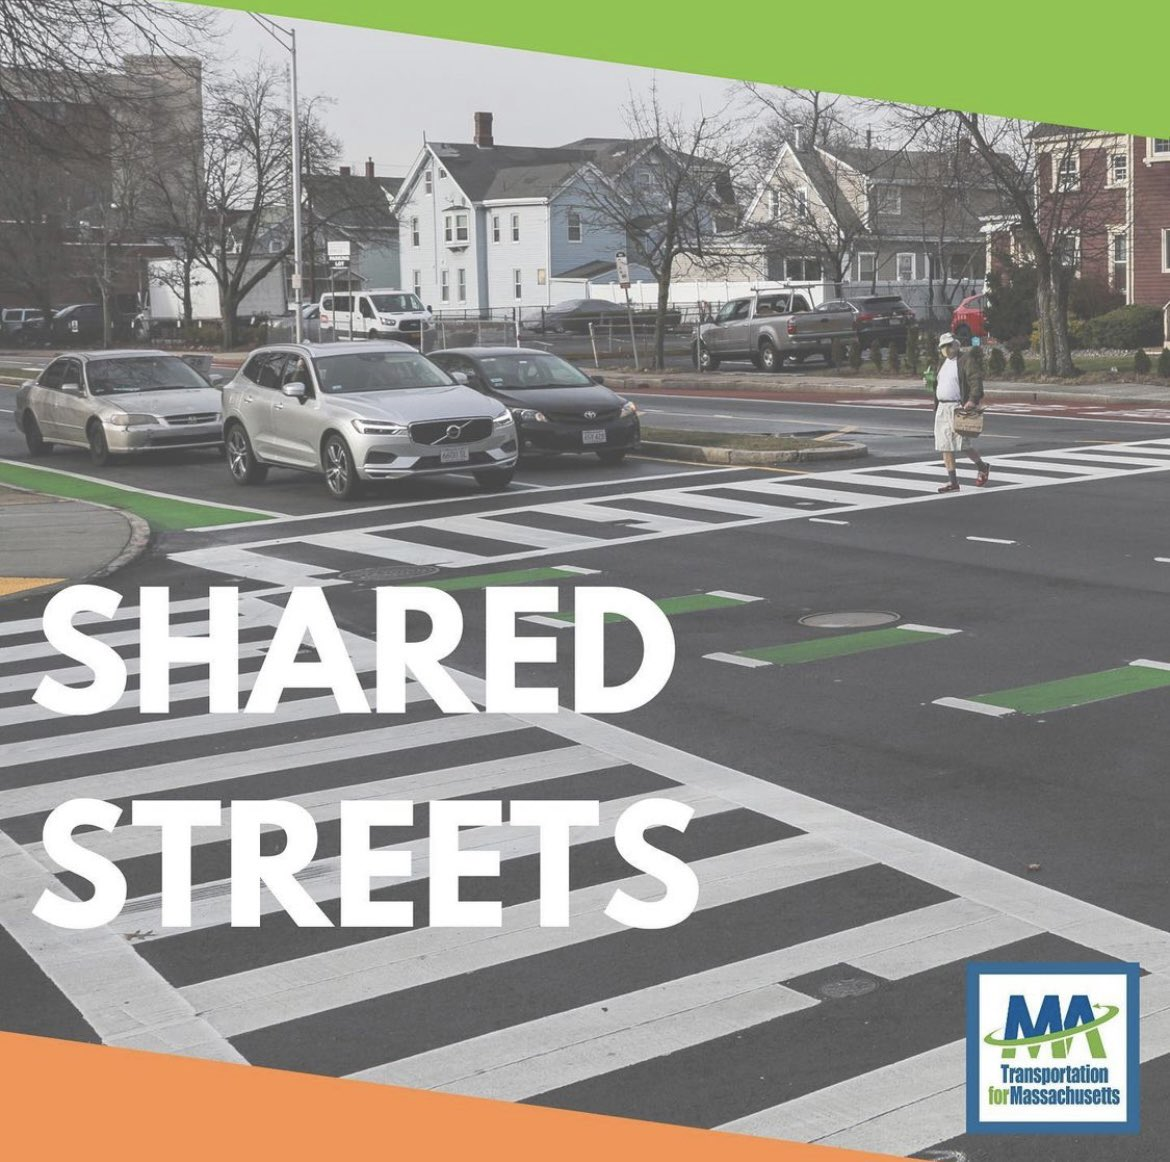 @MassDOT Shared Streets & Spaces program encourages planners and local leaders to rethink how we use pavement.